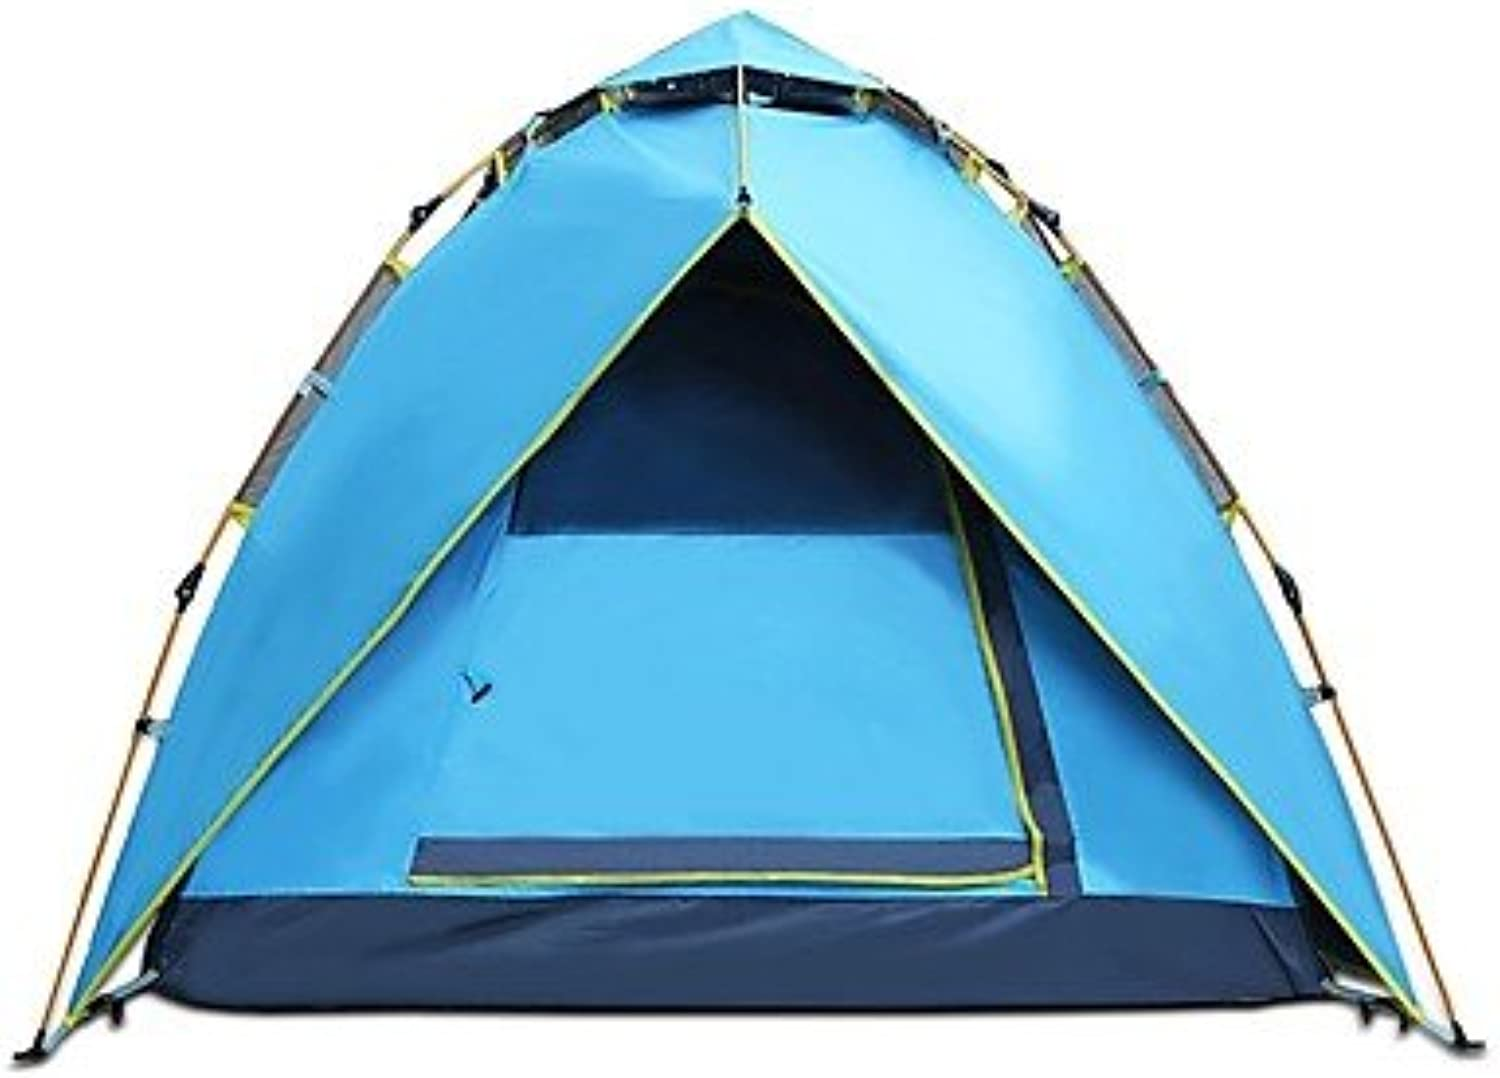 XUEXIN 3-4 persons Tent Double One Room Camping TentCamping Traveling-